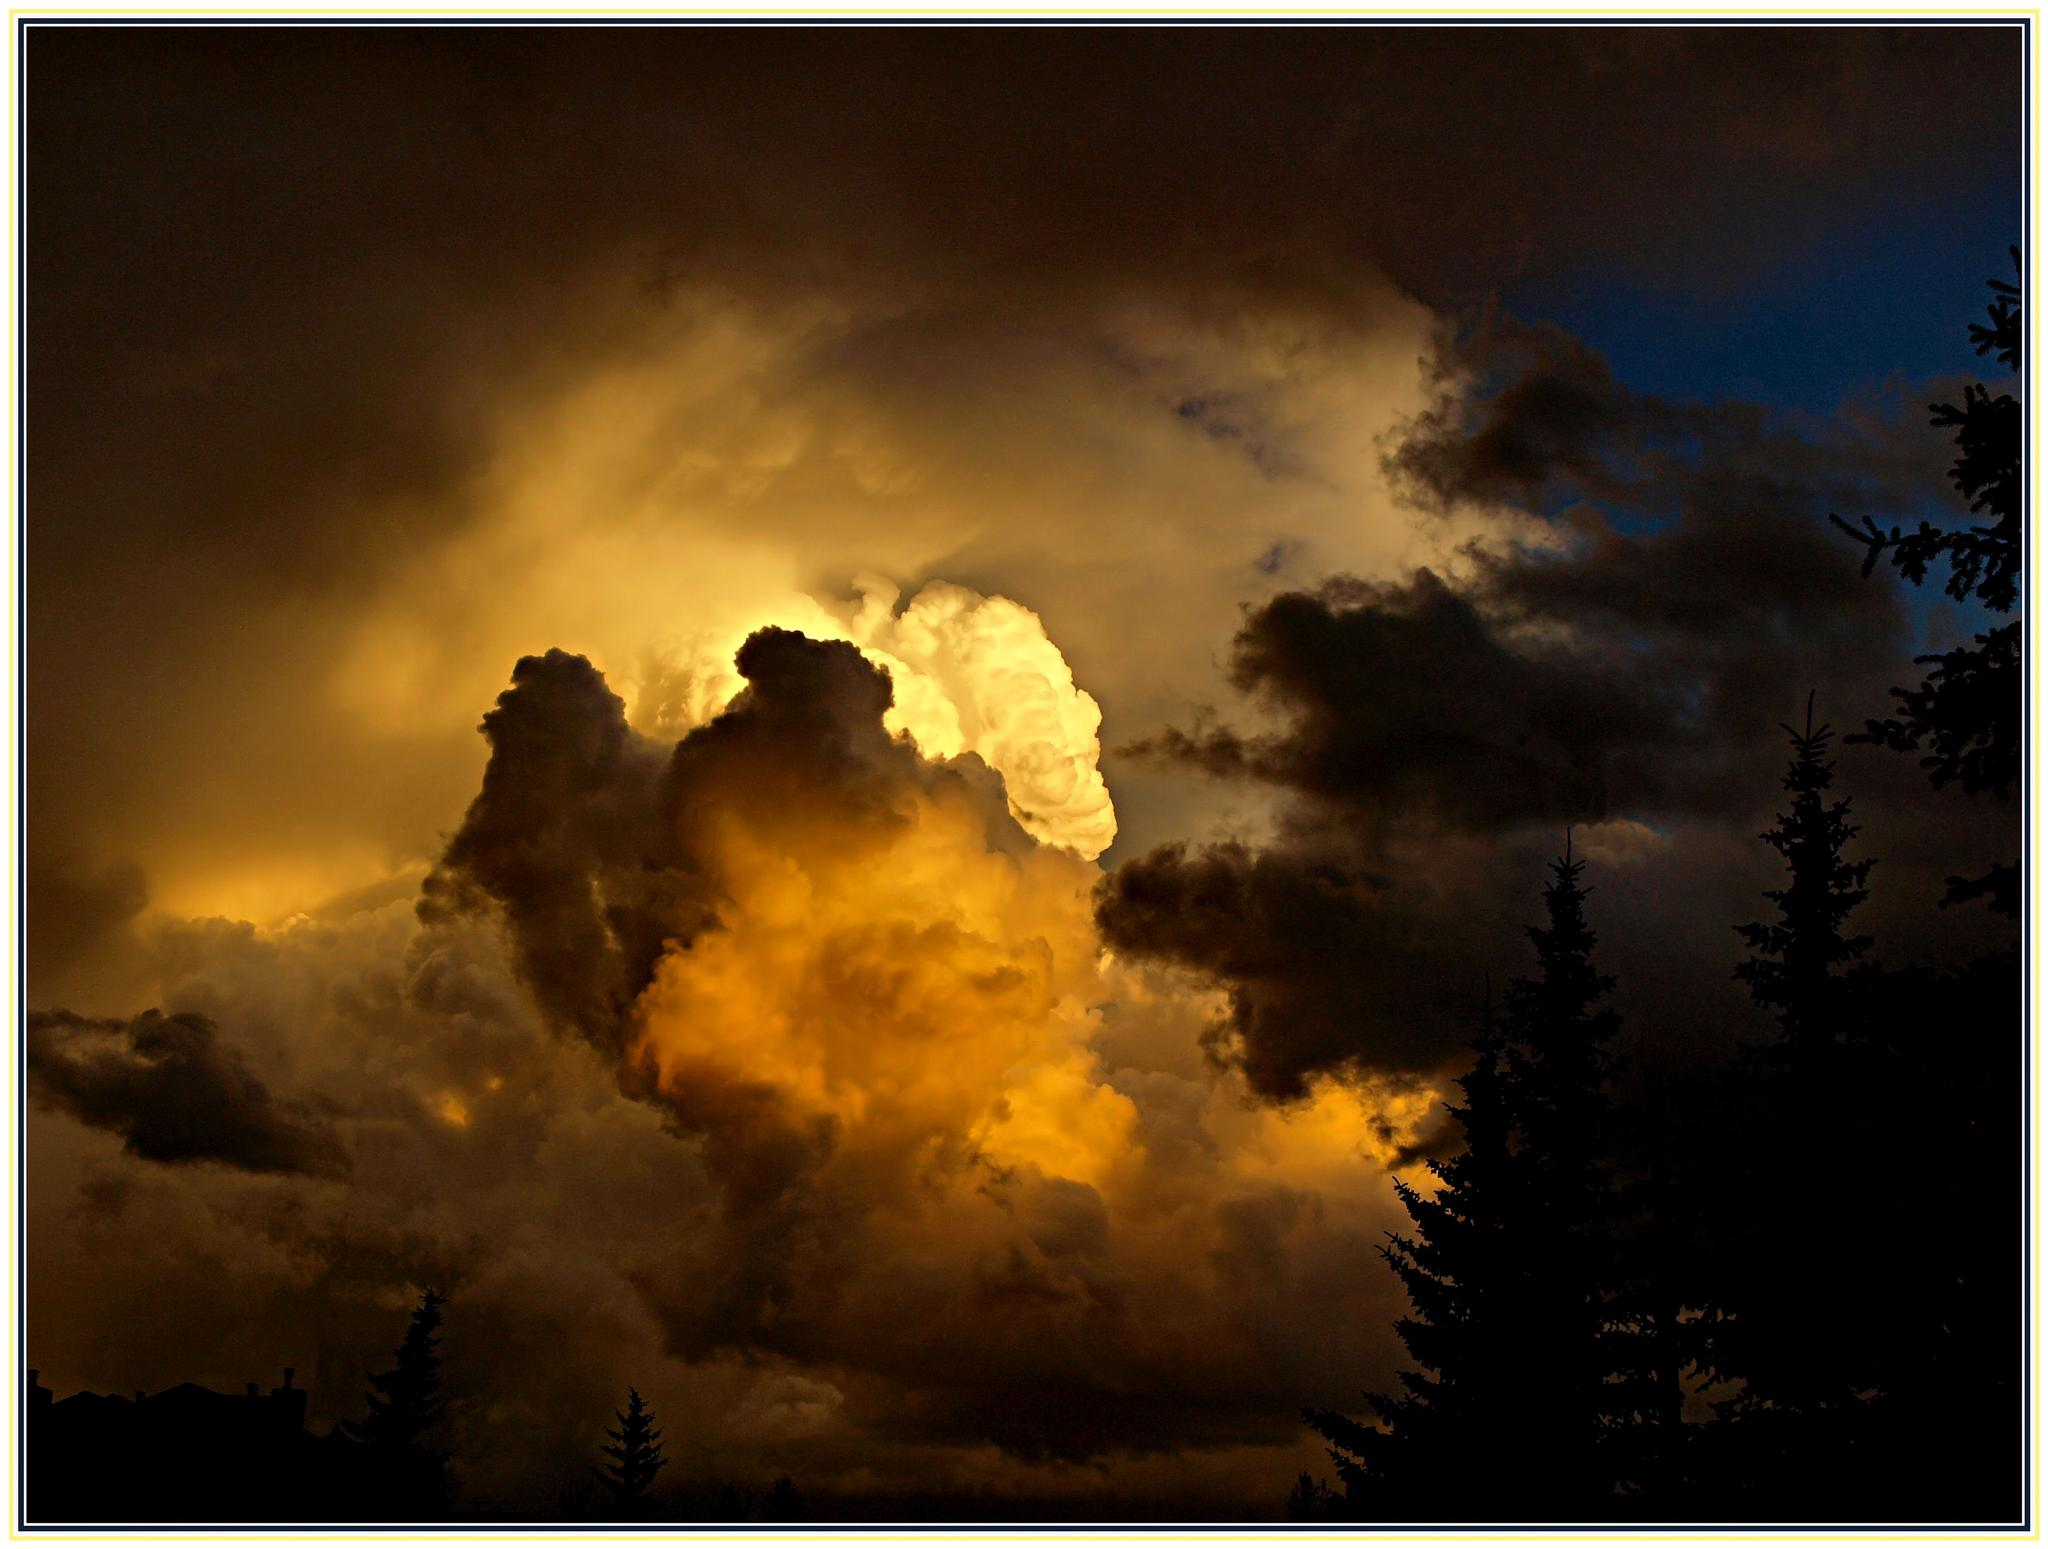 storm clouds at sunset by redskyephotography